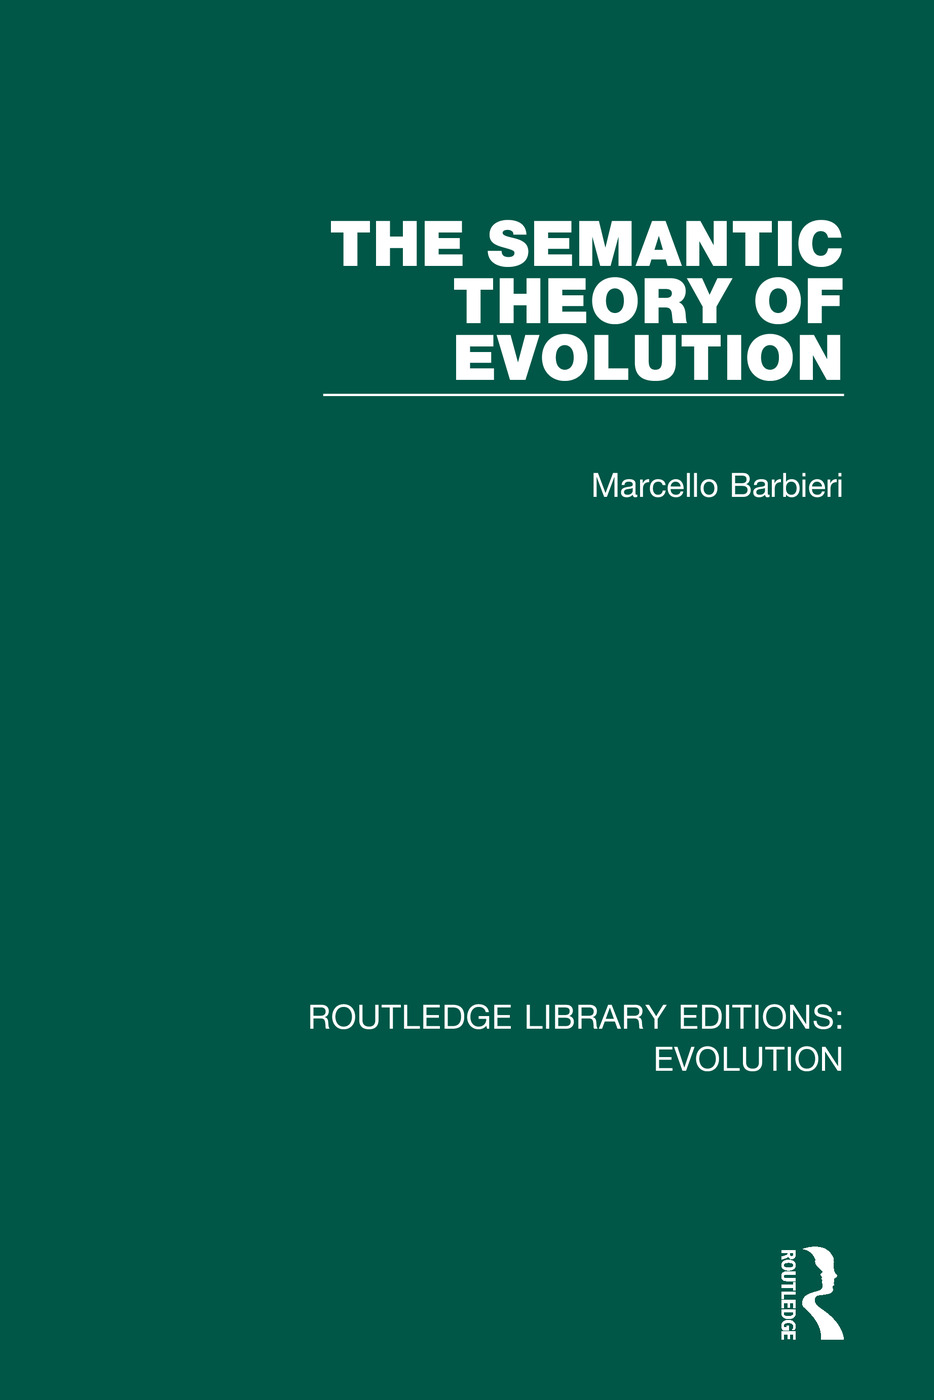 The Semantic Theory of Evolution